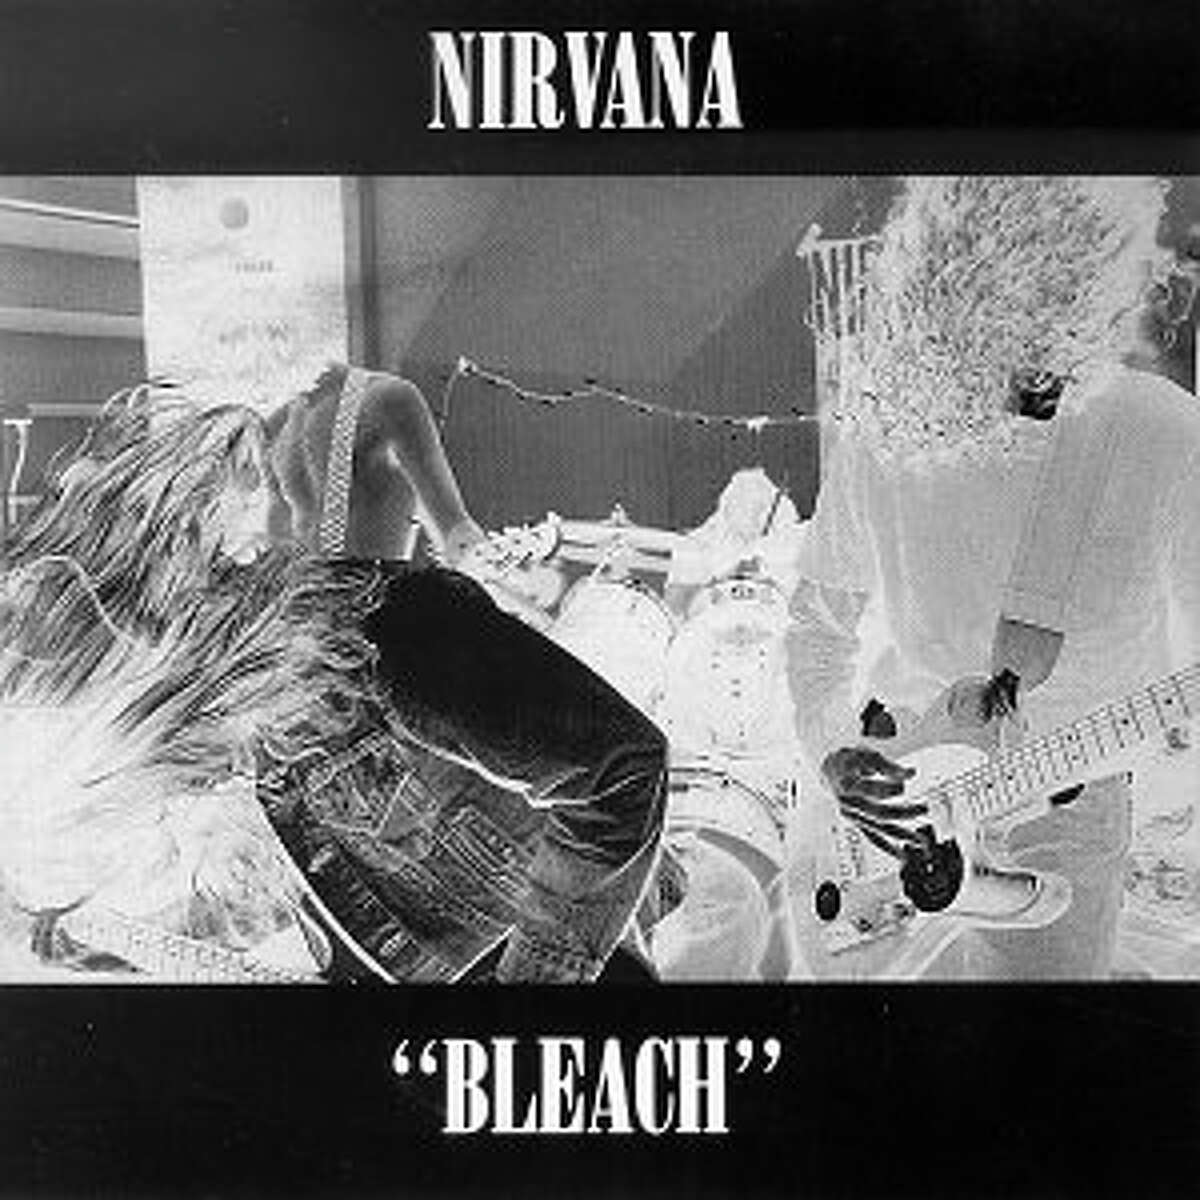 Nirvana released its first full-length album